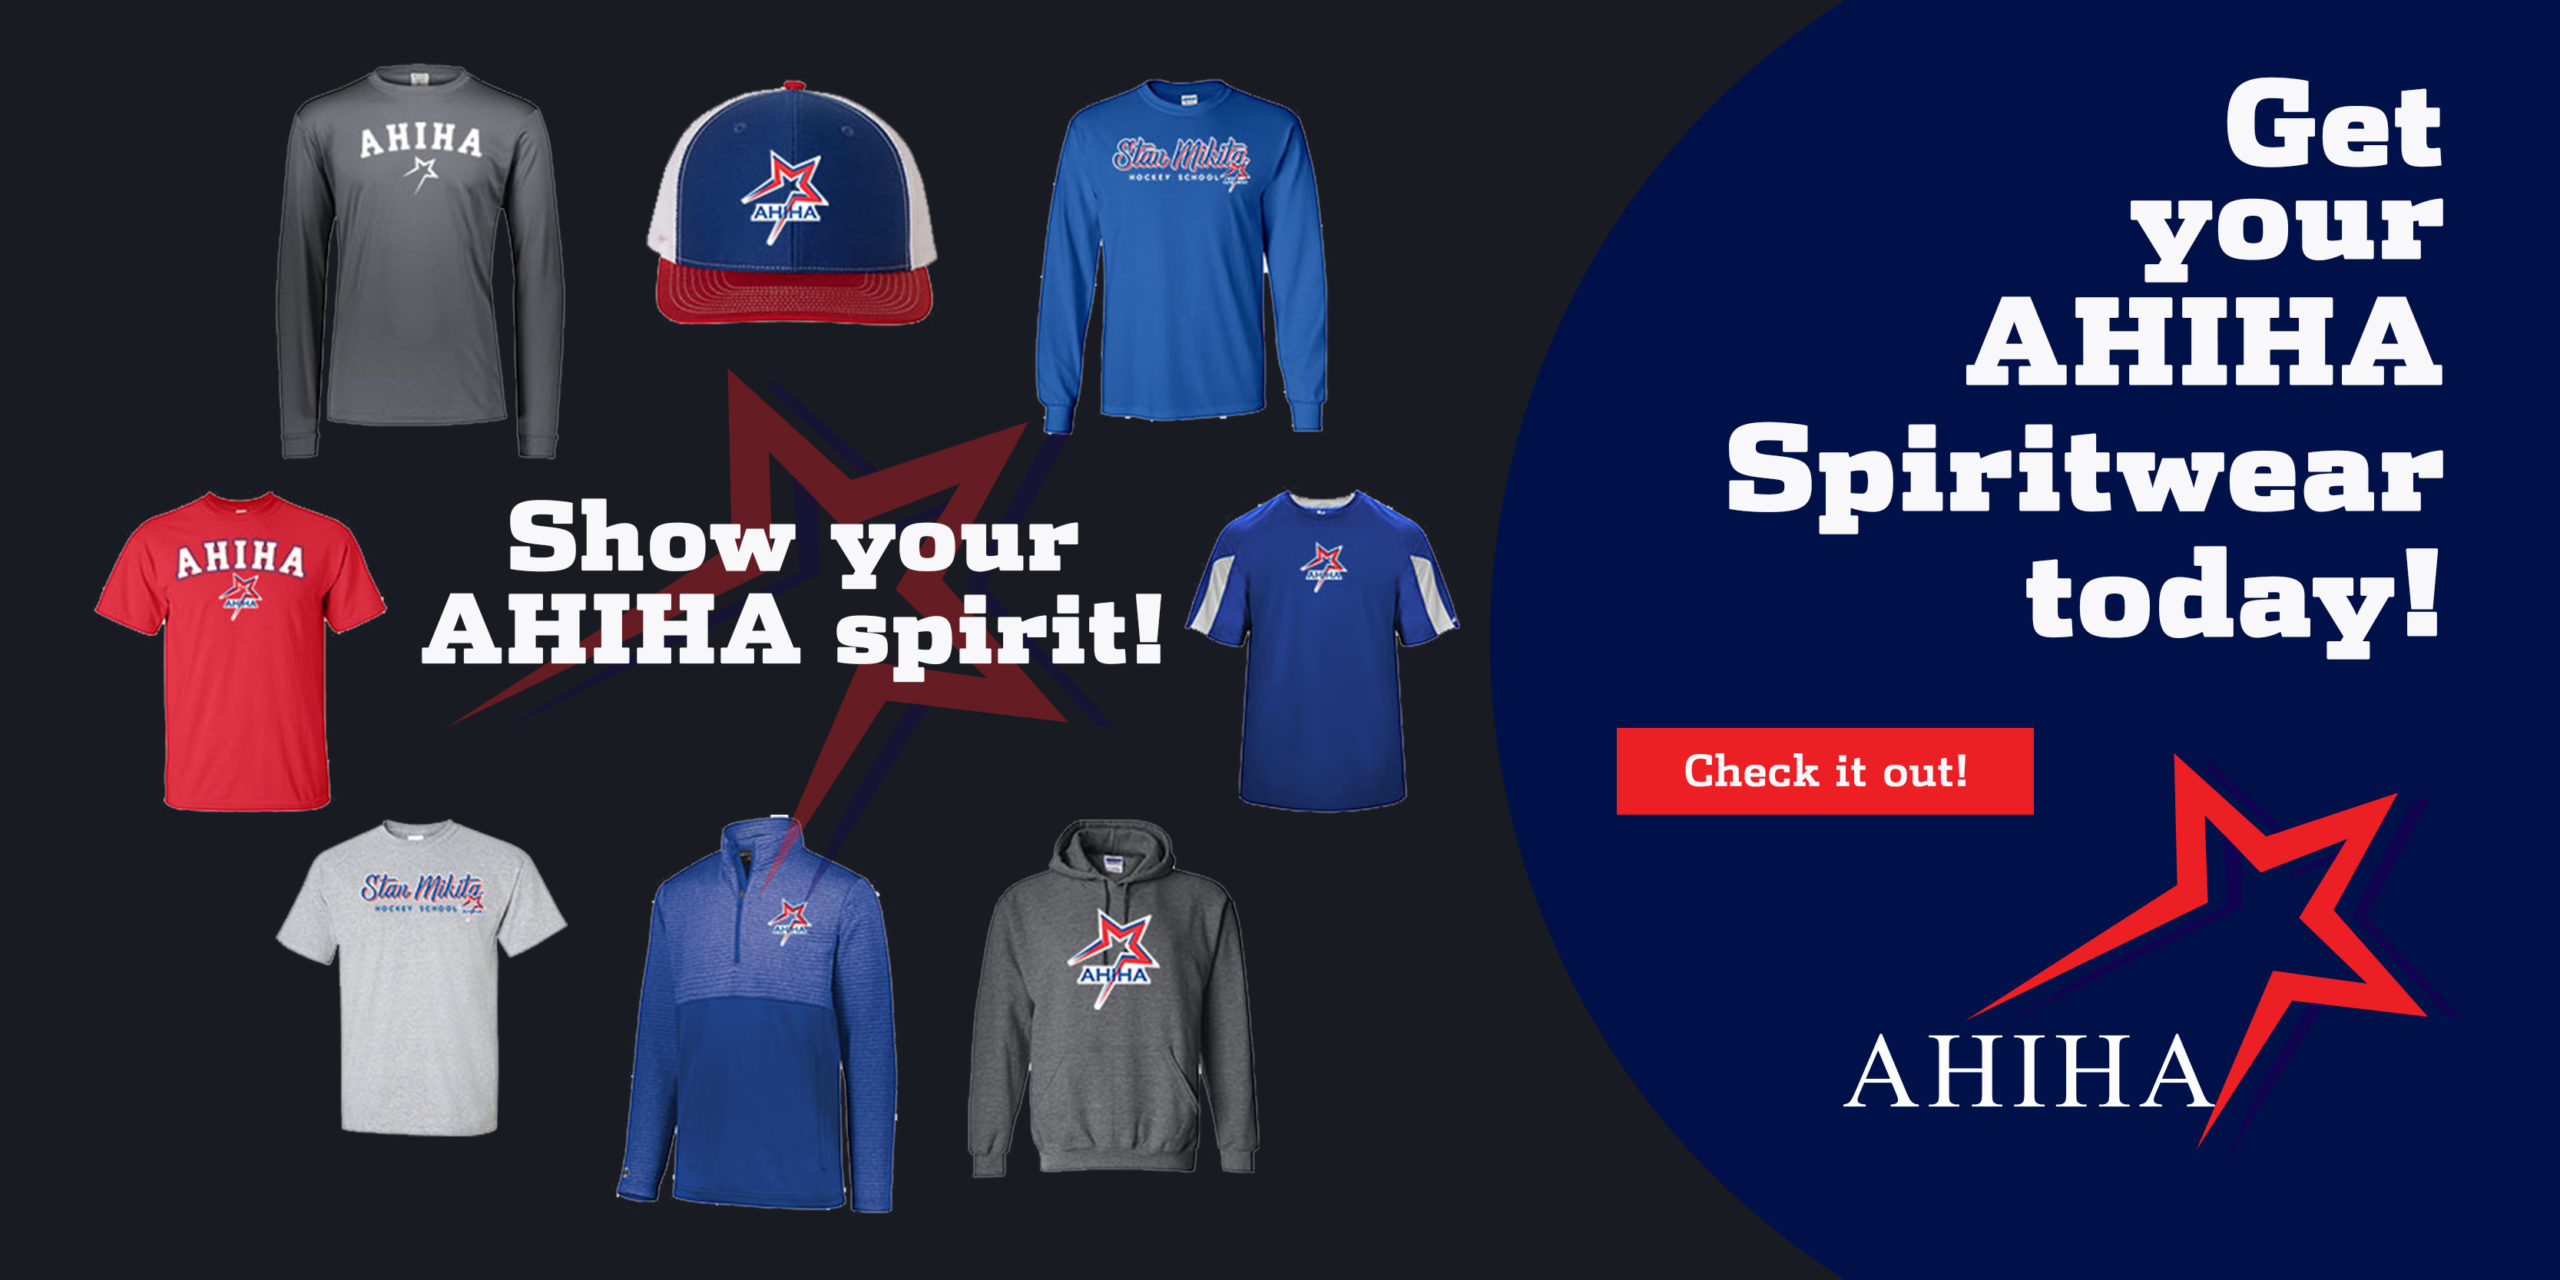 Get your AHIHA Spiritwear today!